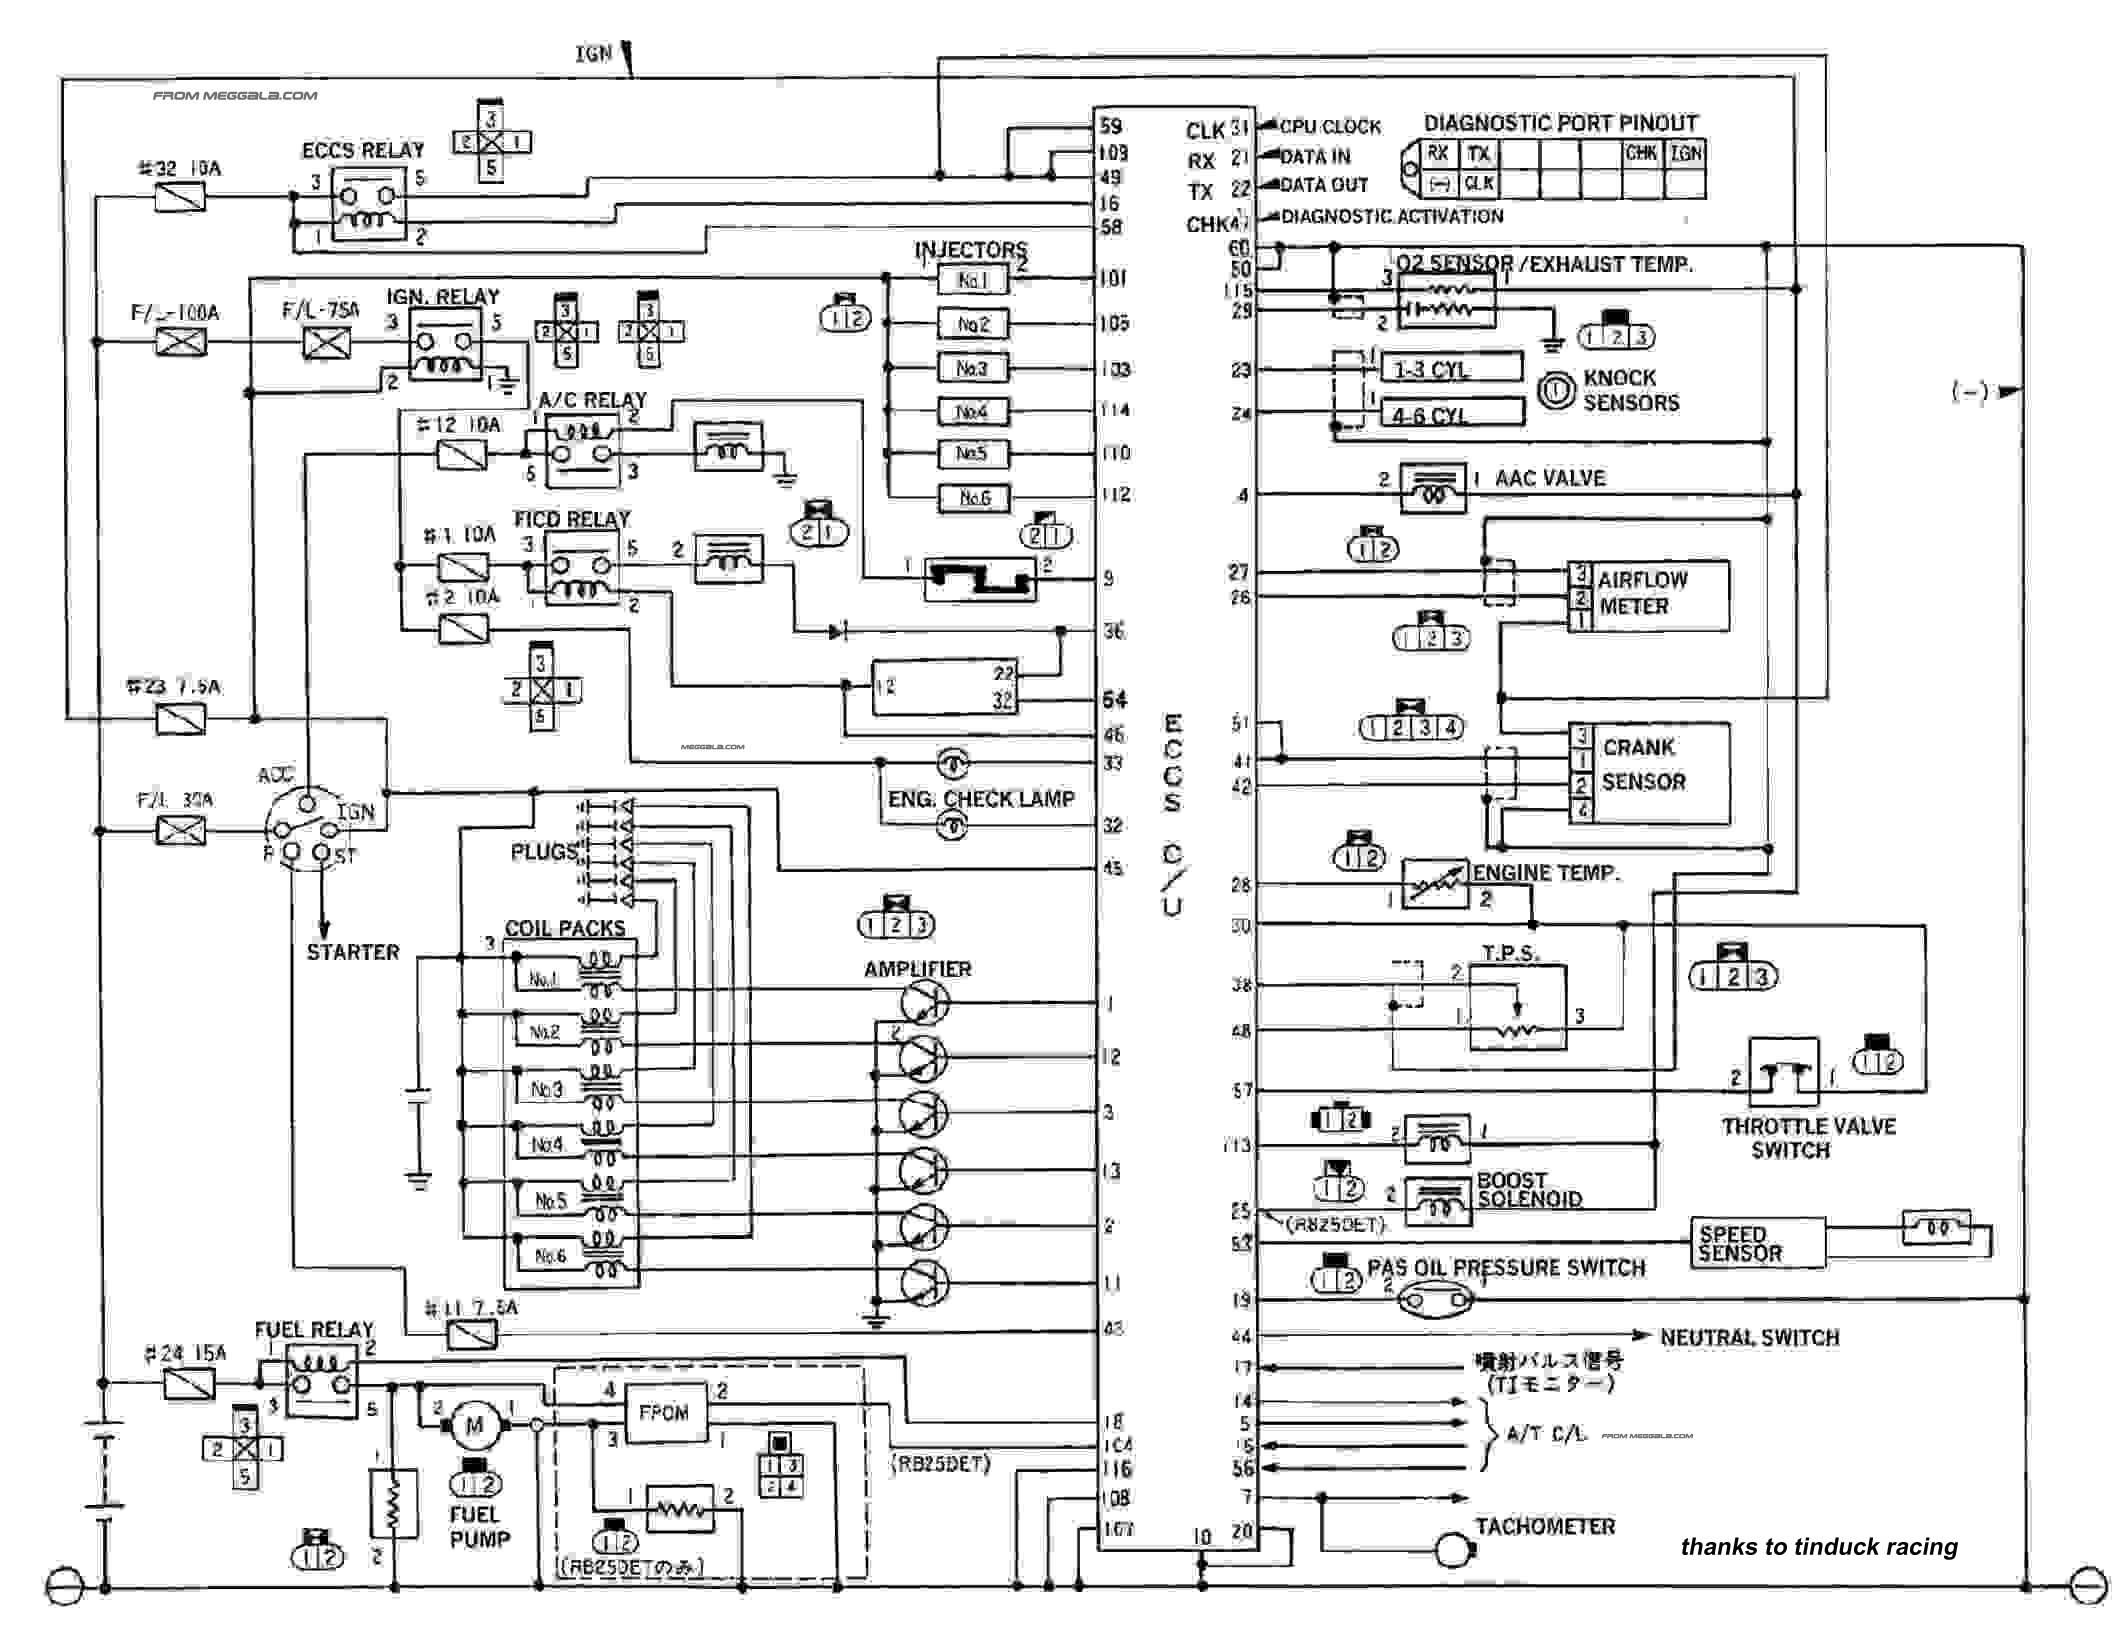 7 pin wiring harness for 2001 s10 ls